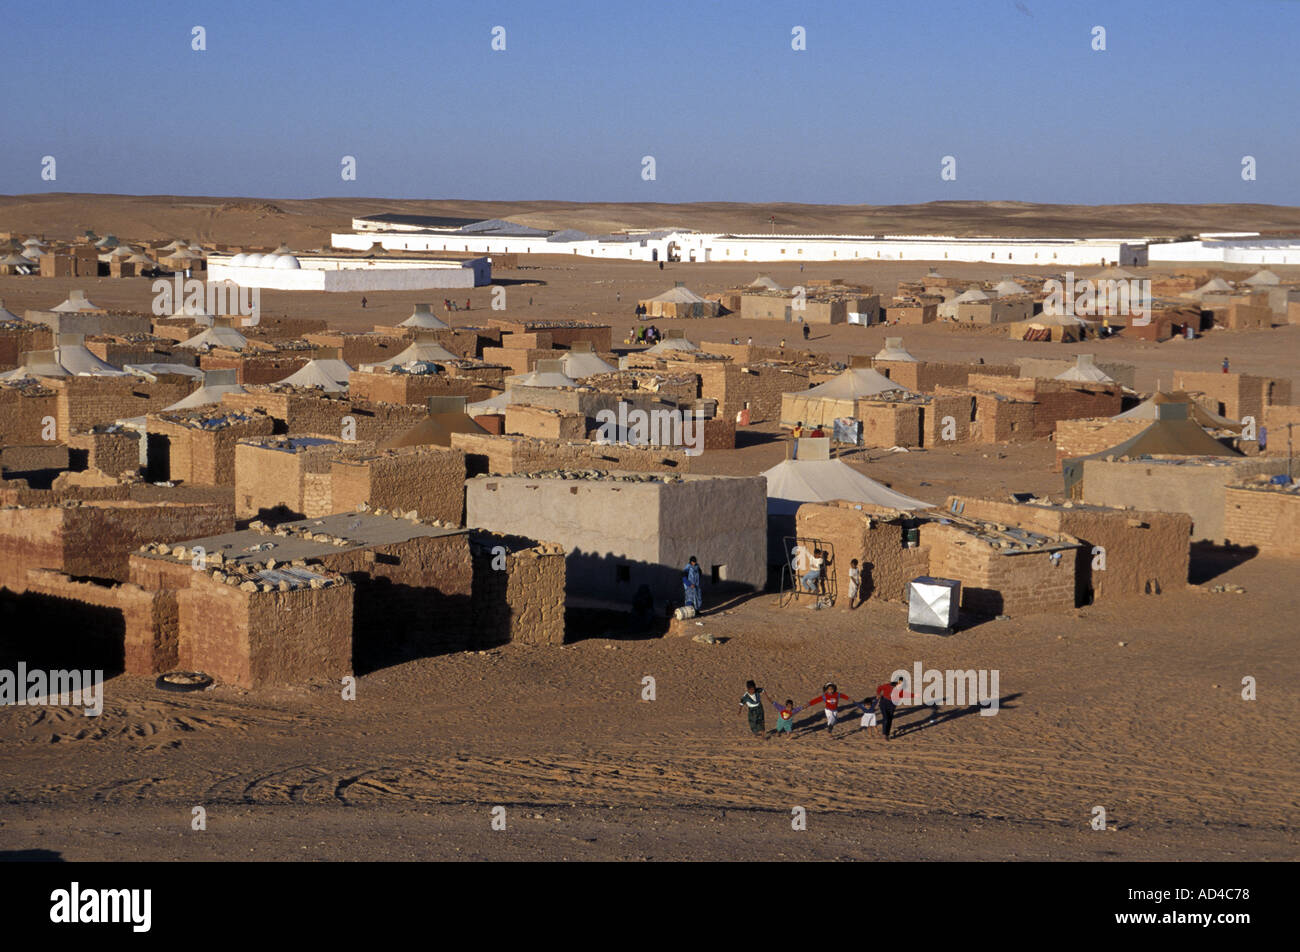 WESTERN SAHARA CHILDREN AT POLISARIO 27 FEBRUARY CAMP Stock Photo